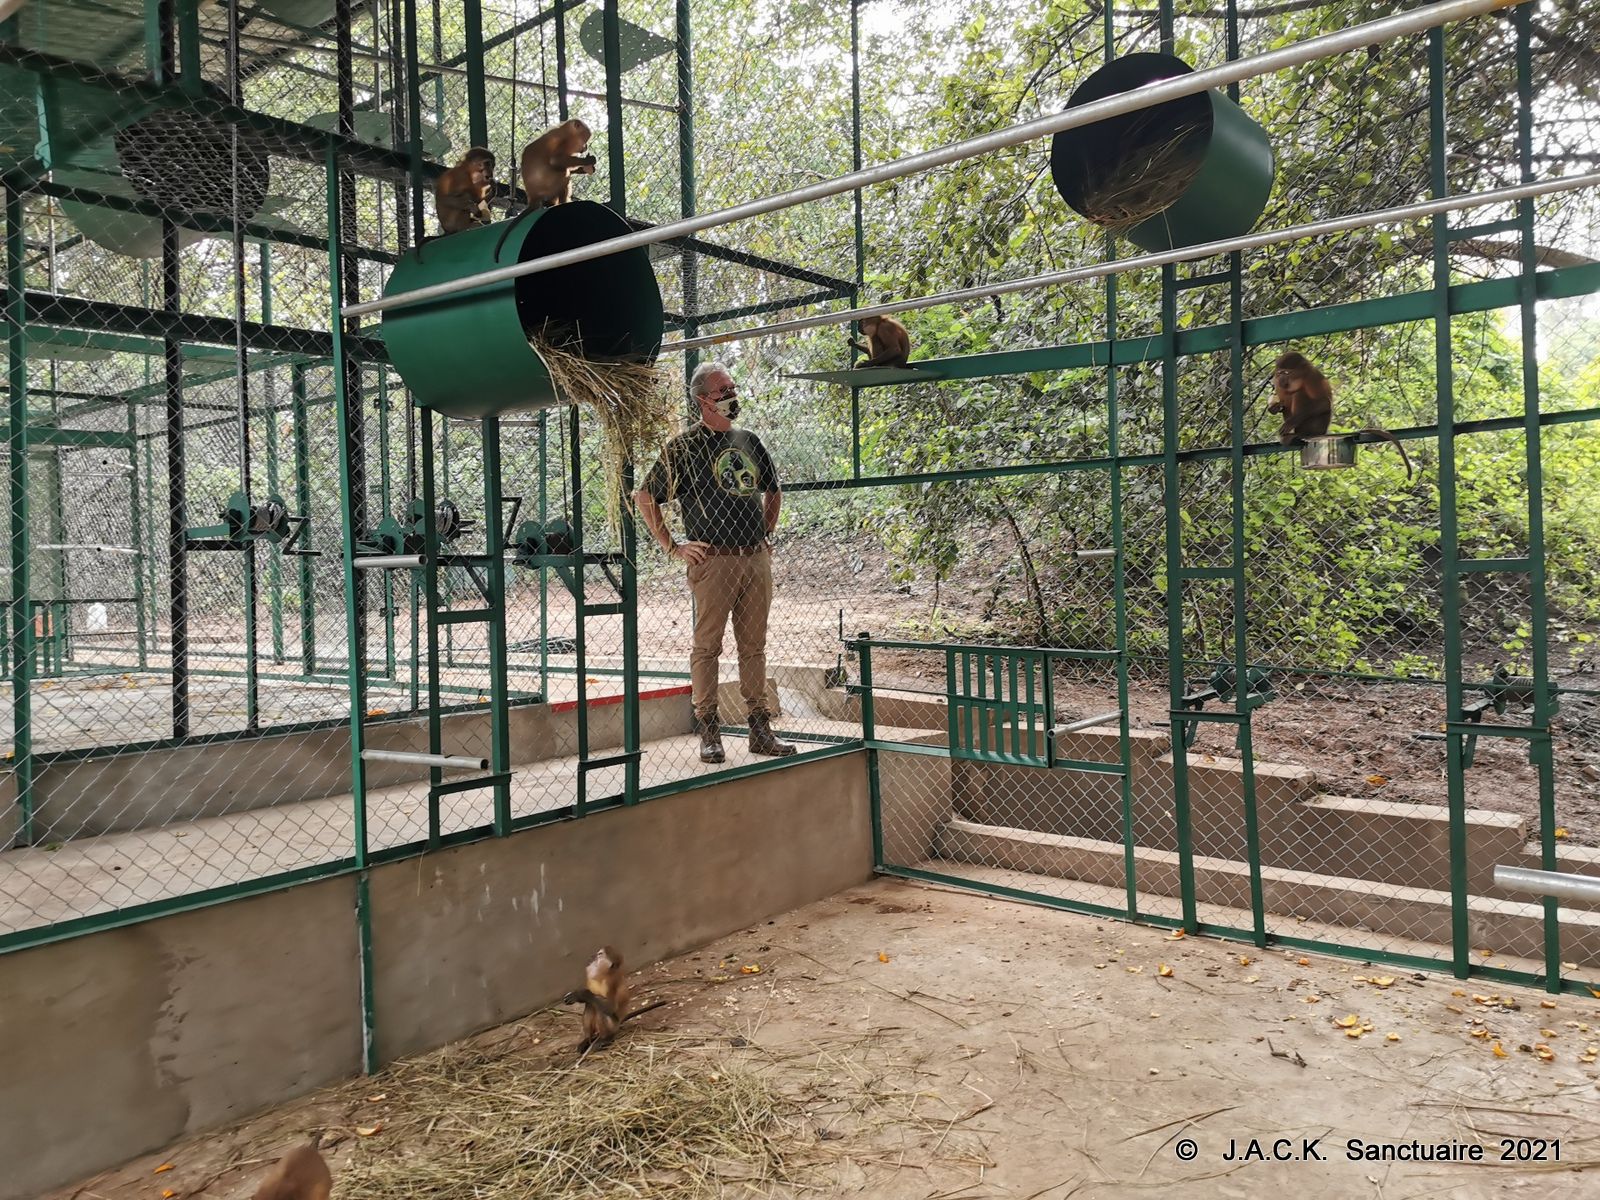 Arrival at J.A.C.K. of the monkeys repatriated from Zimbabwe